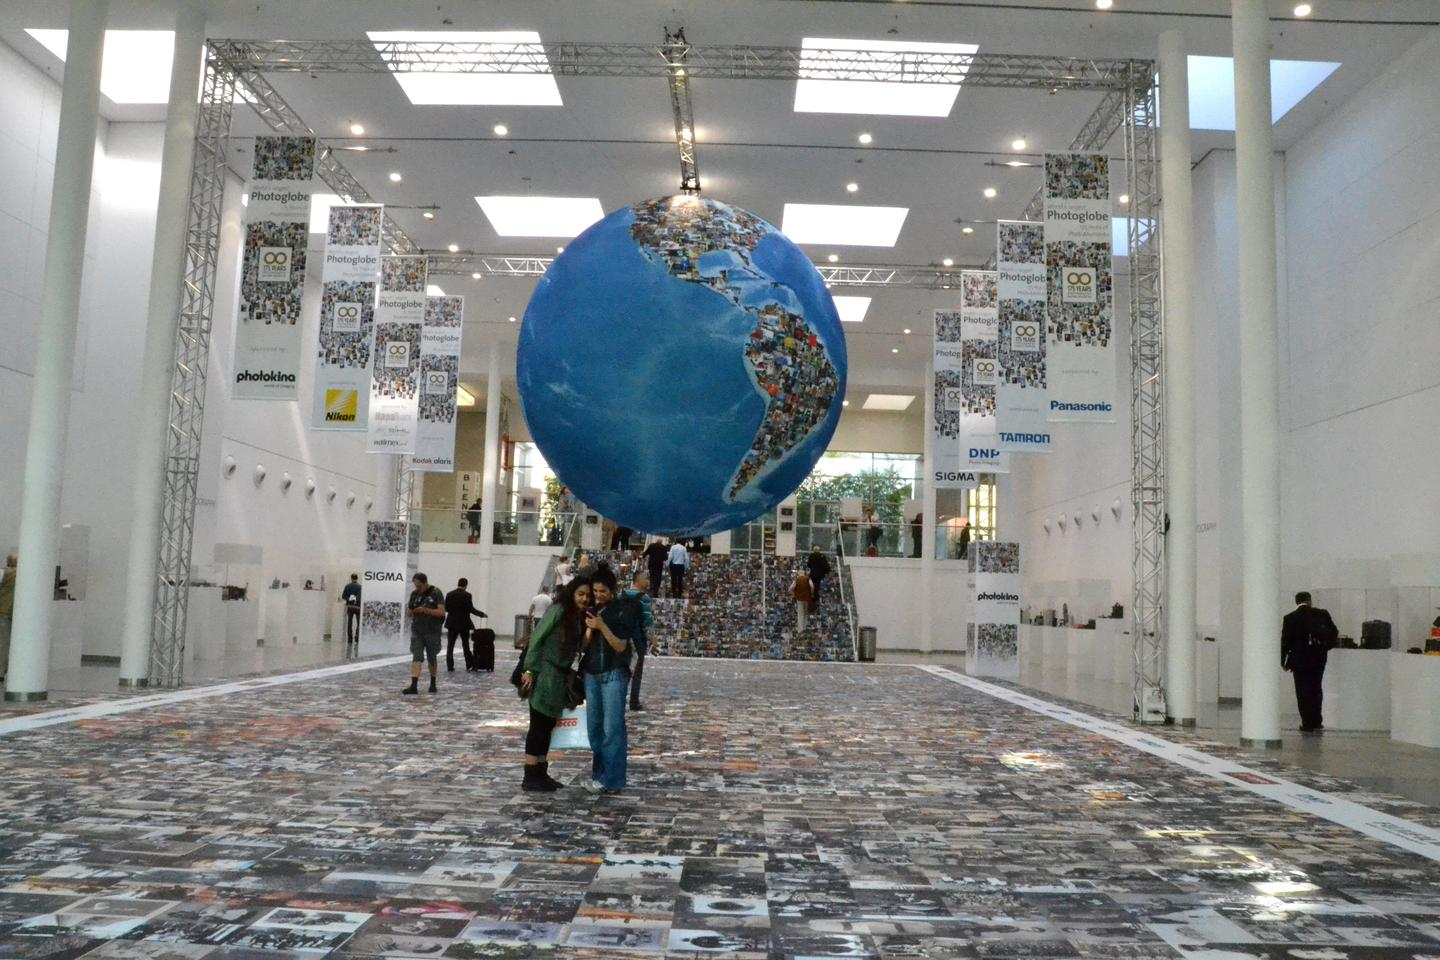 "The ""Largest Photoglobe in the World"" celebrates 175 years of photography at Photokina (Photo: Paul Ridden/Gizmag)"